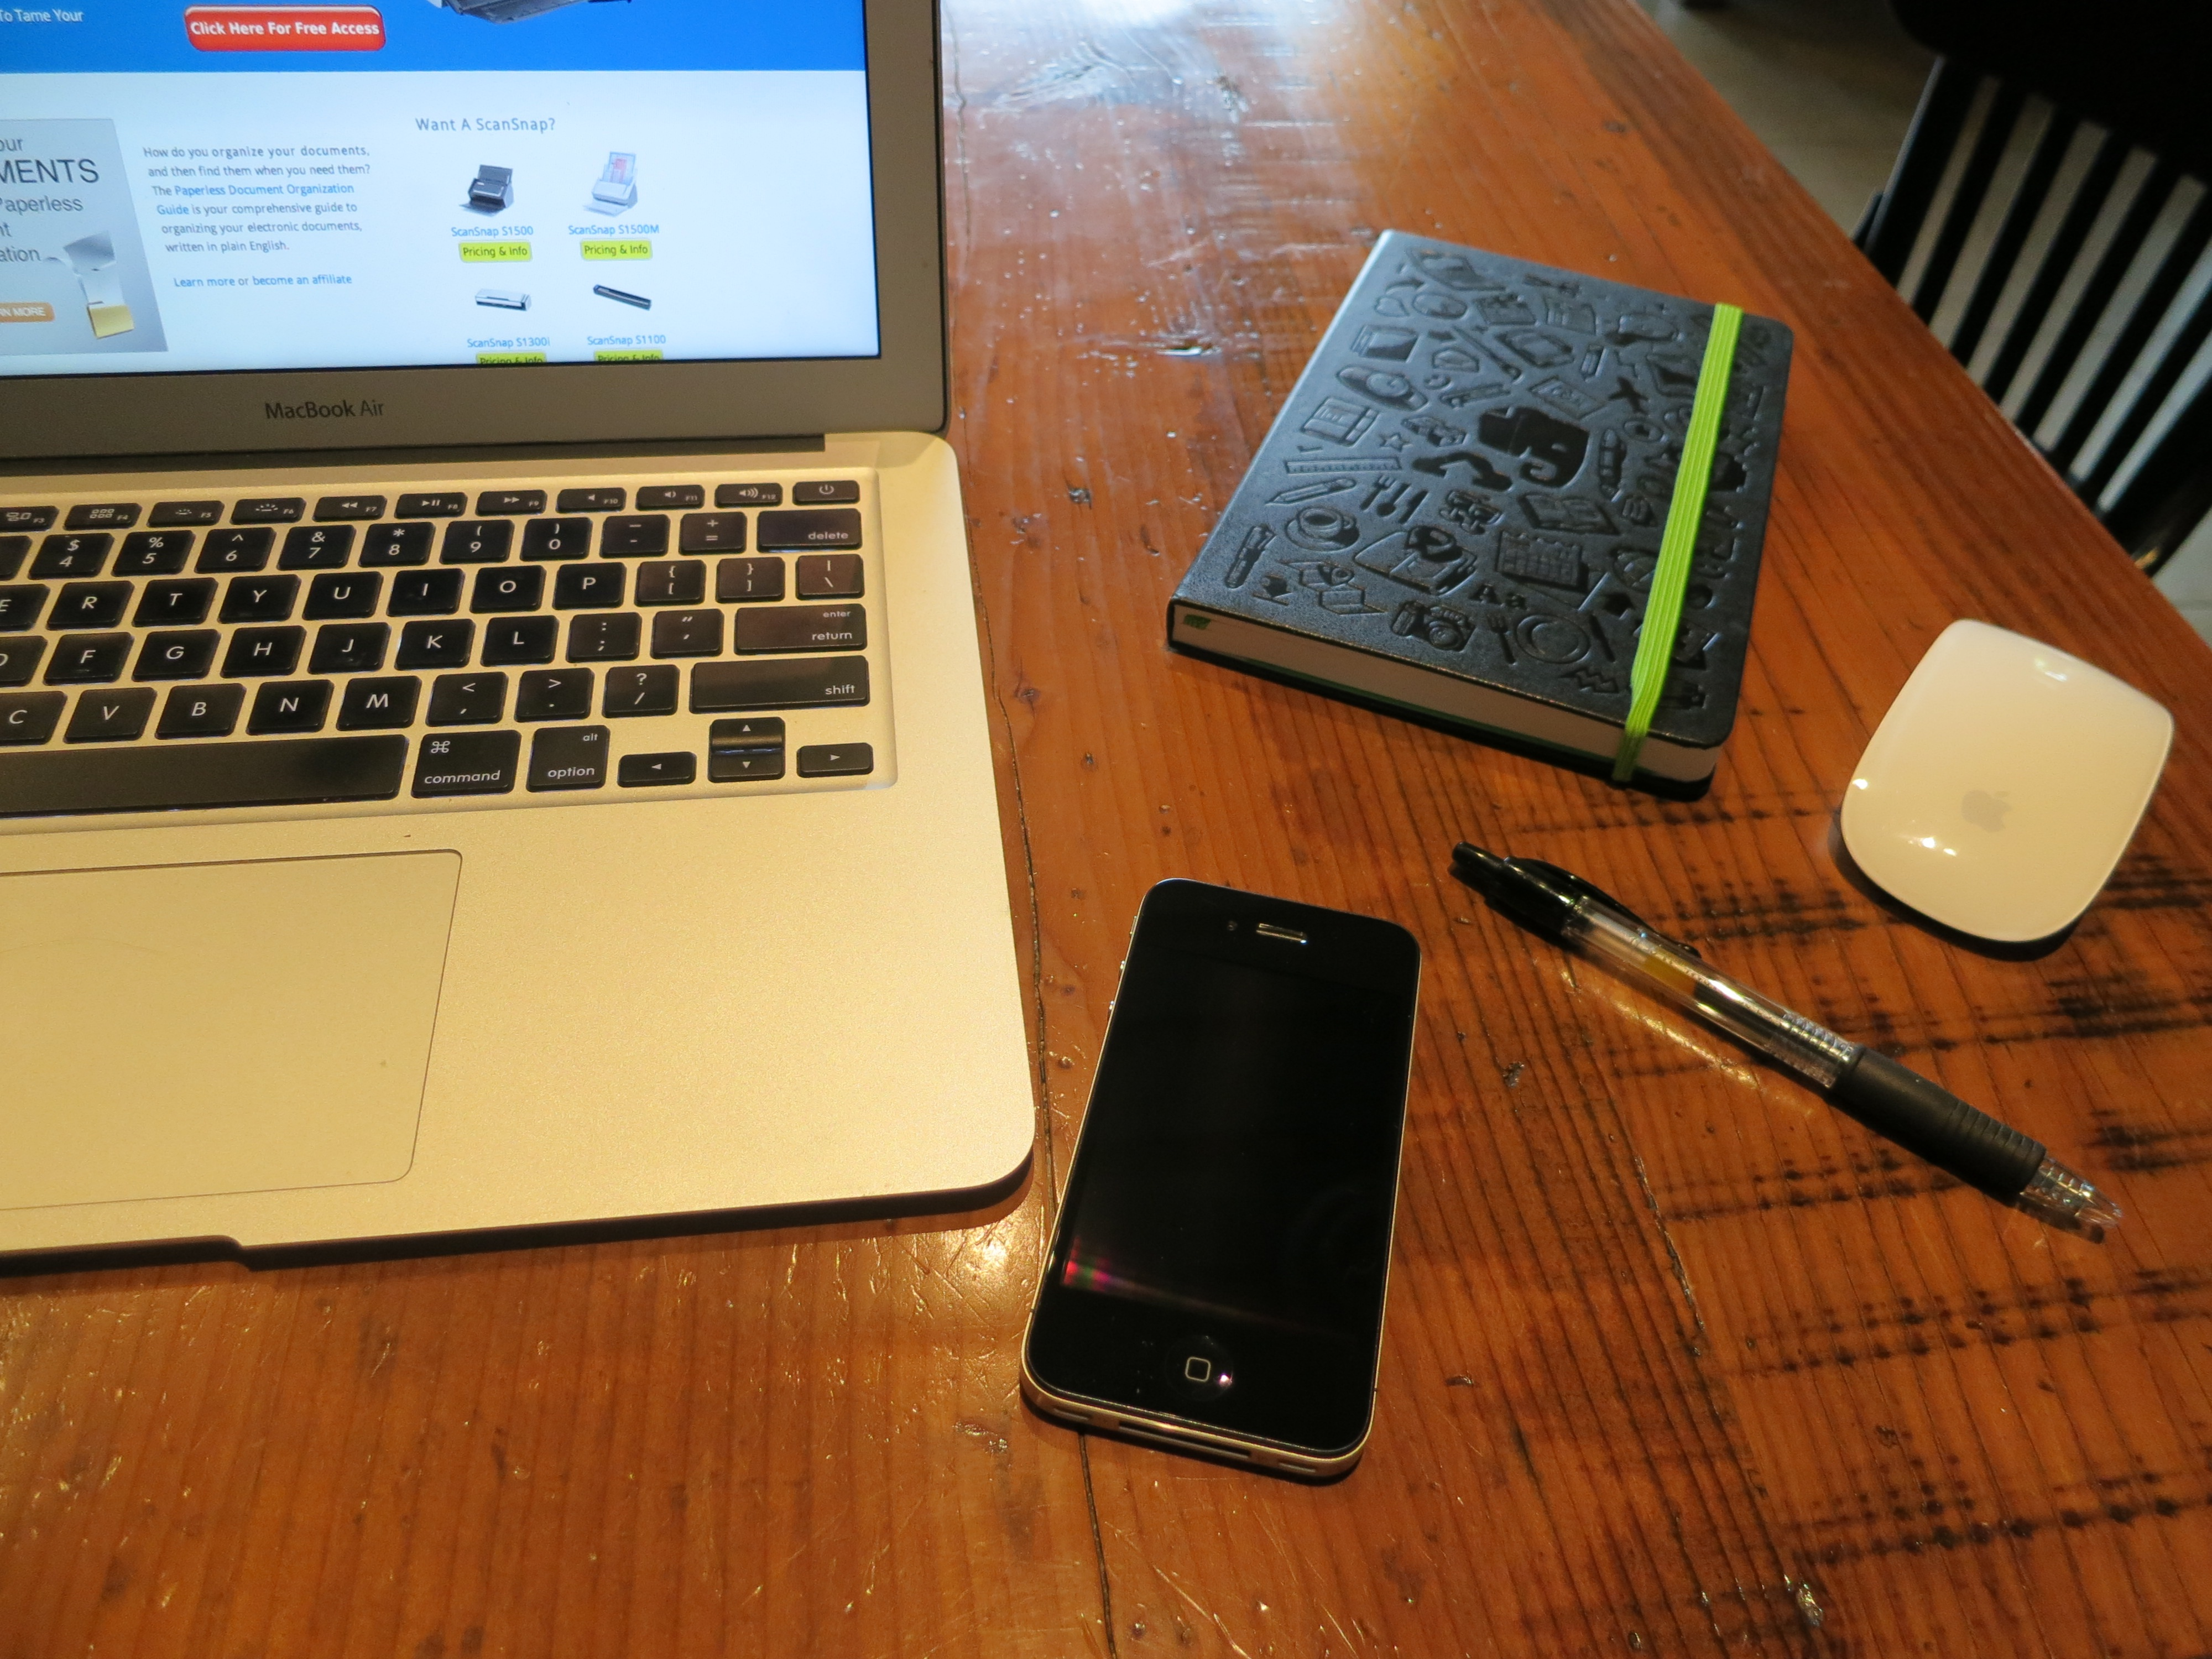 File:Testing the Evernote Smart Notebook by Moleskine at